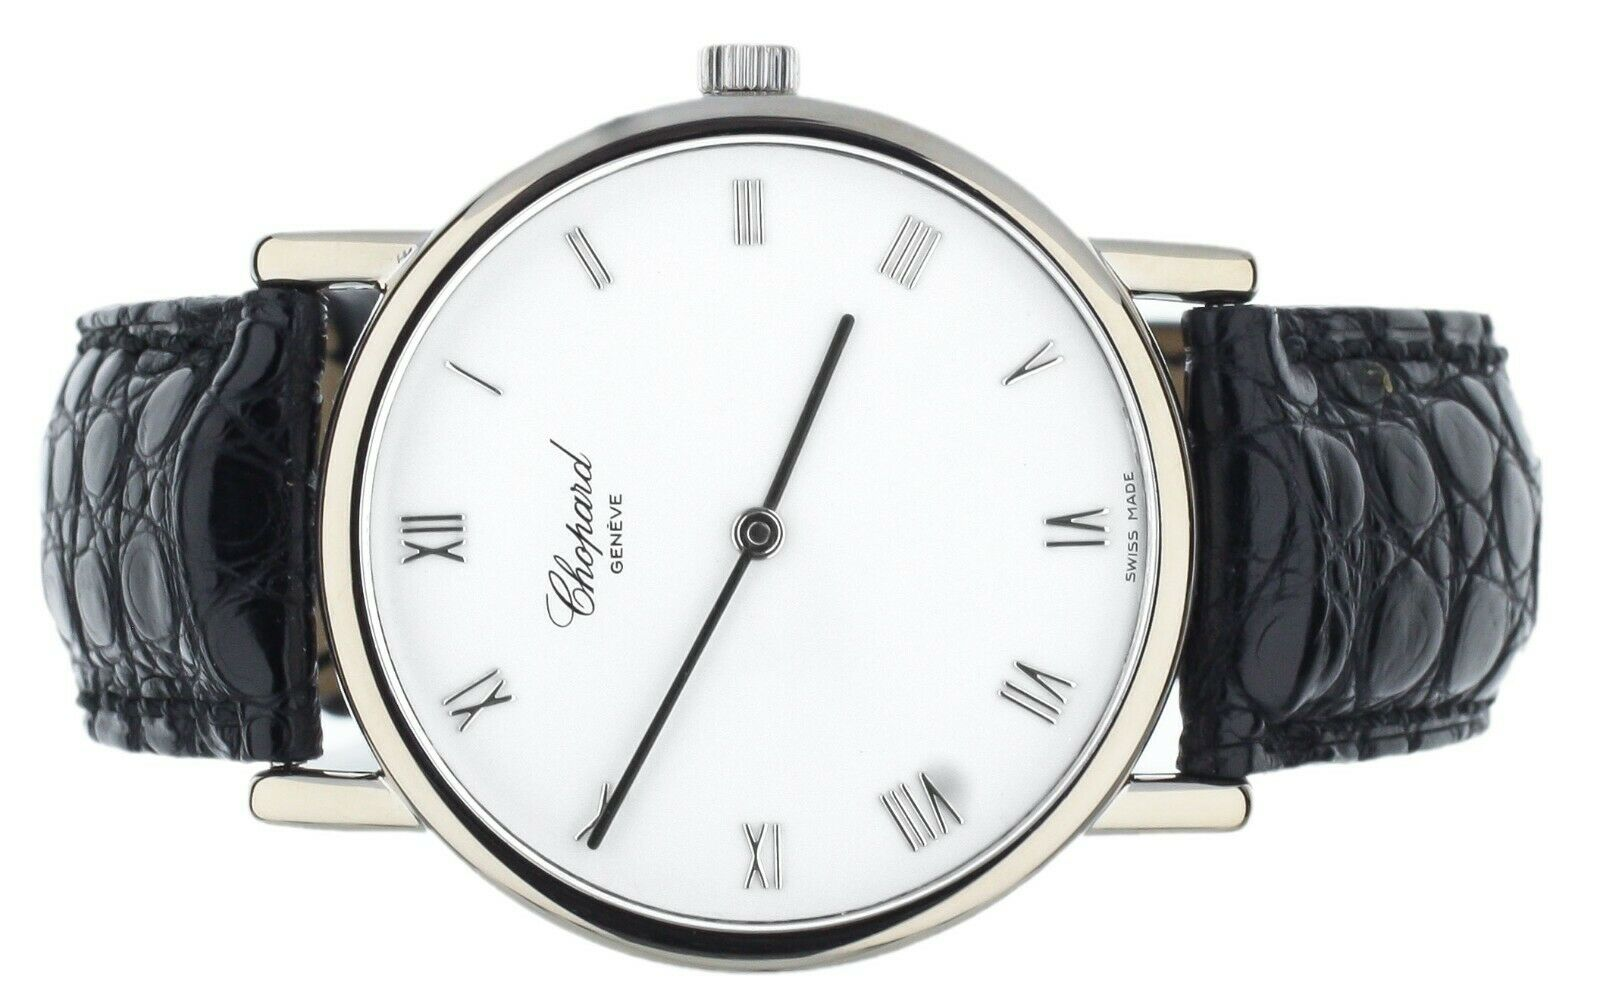 CHOPARD WHITE GOLD 987 LUS MANUAL WIND WATCH 34MM COMPLETE